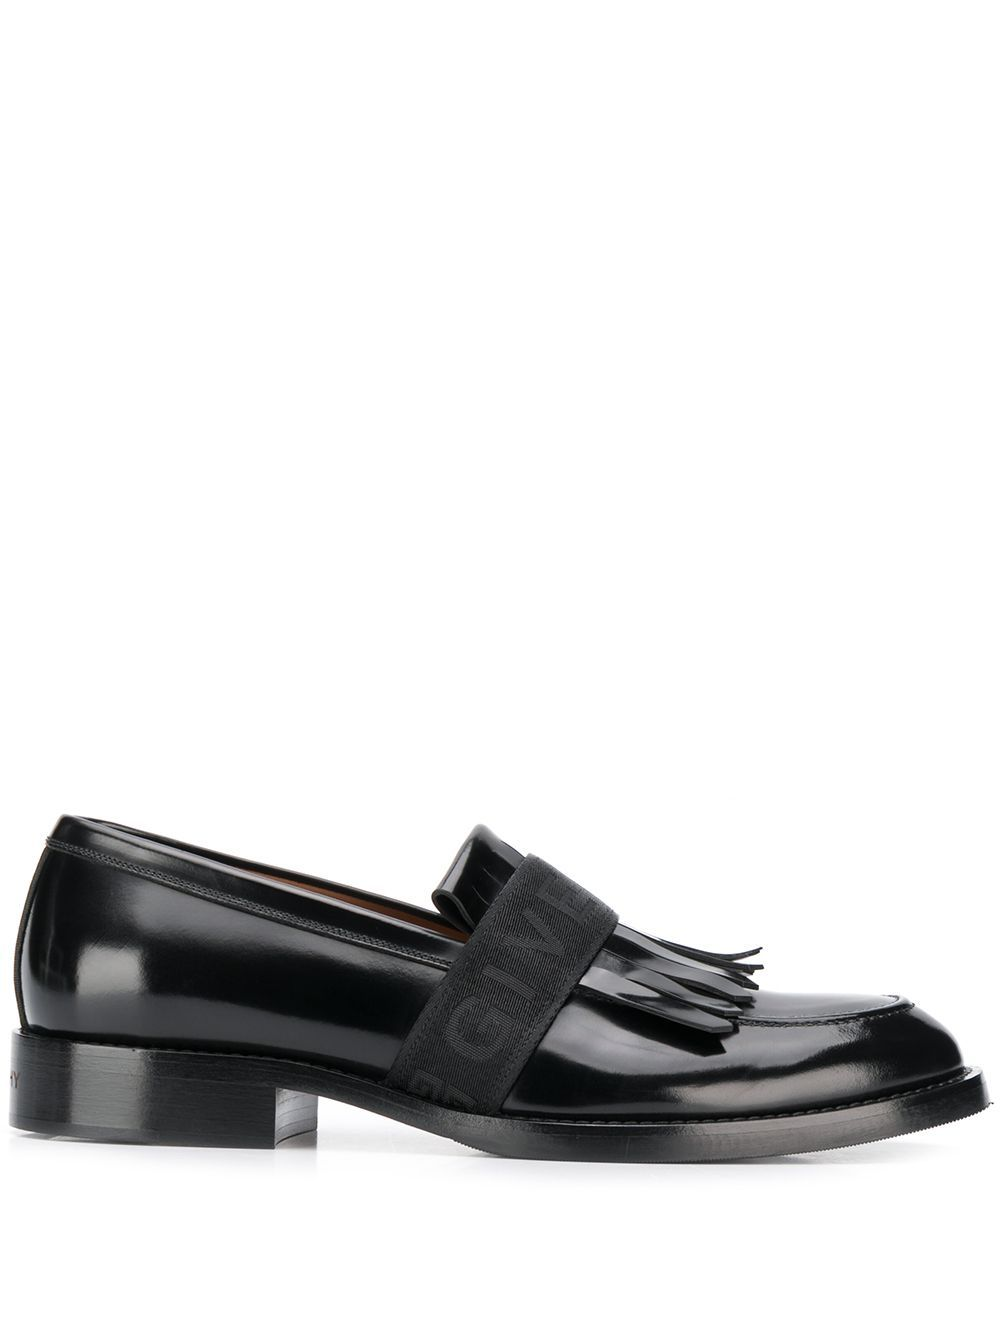 e38787b437a GIVENCHY GIVENCHY FRINGED LOAFERS - 黑色.  givenchy  shoes ...